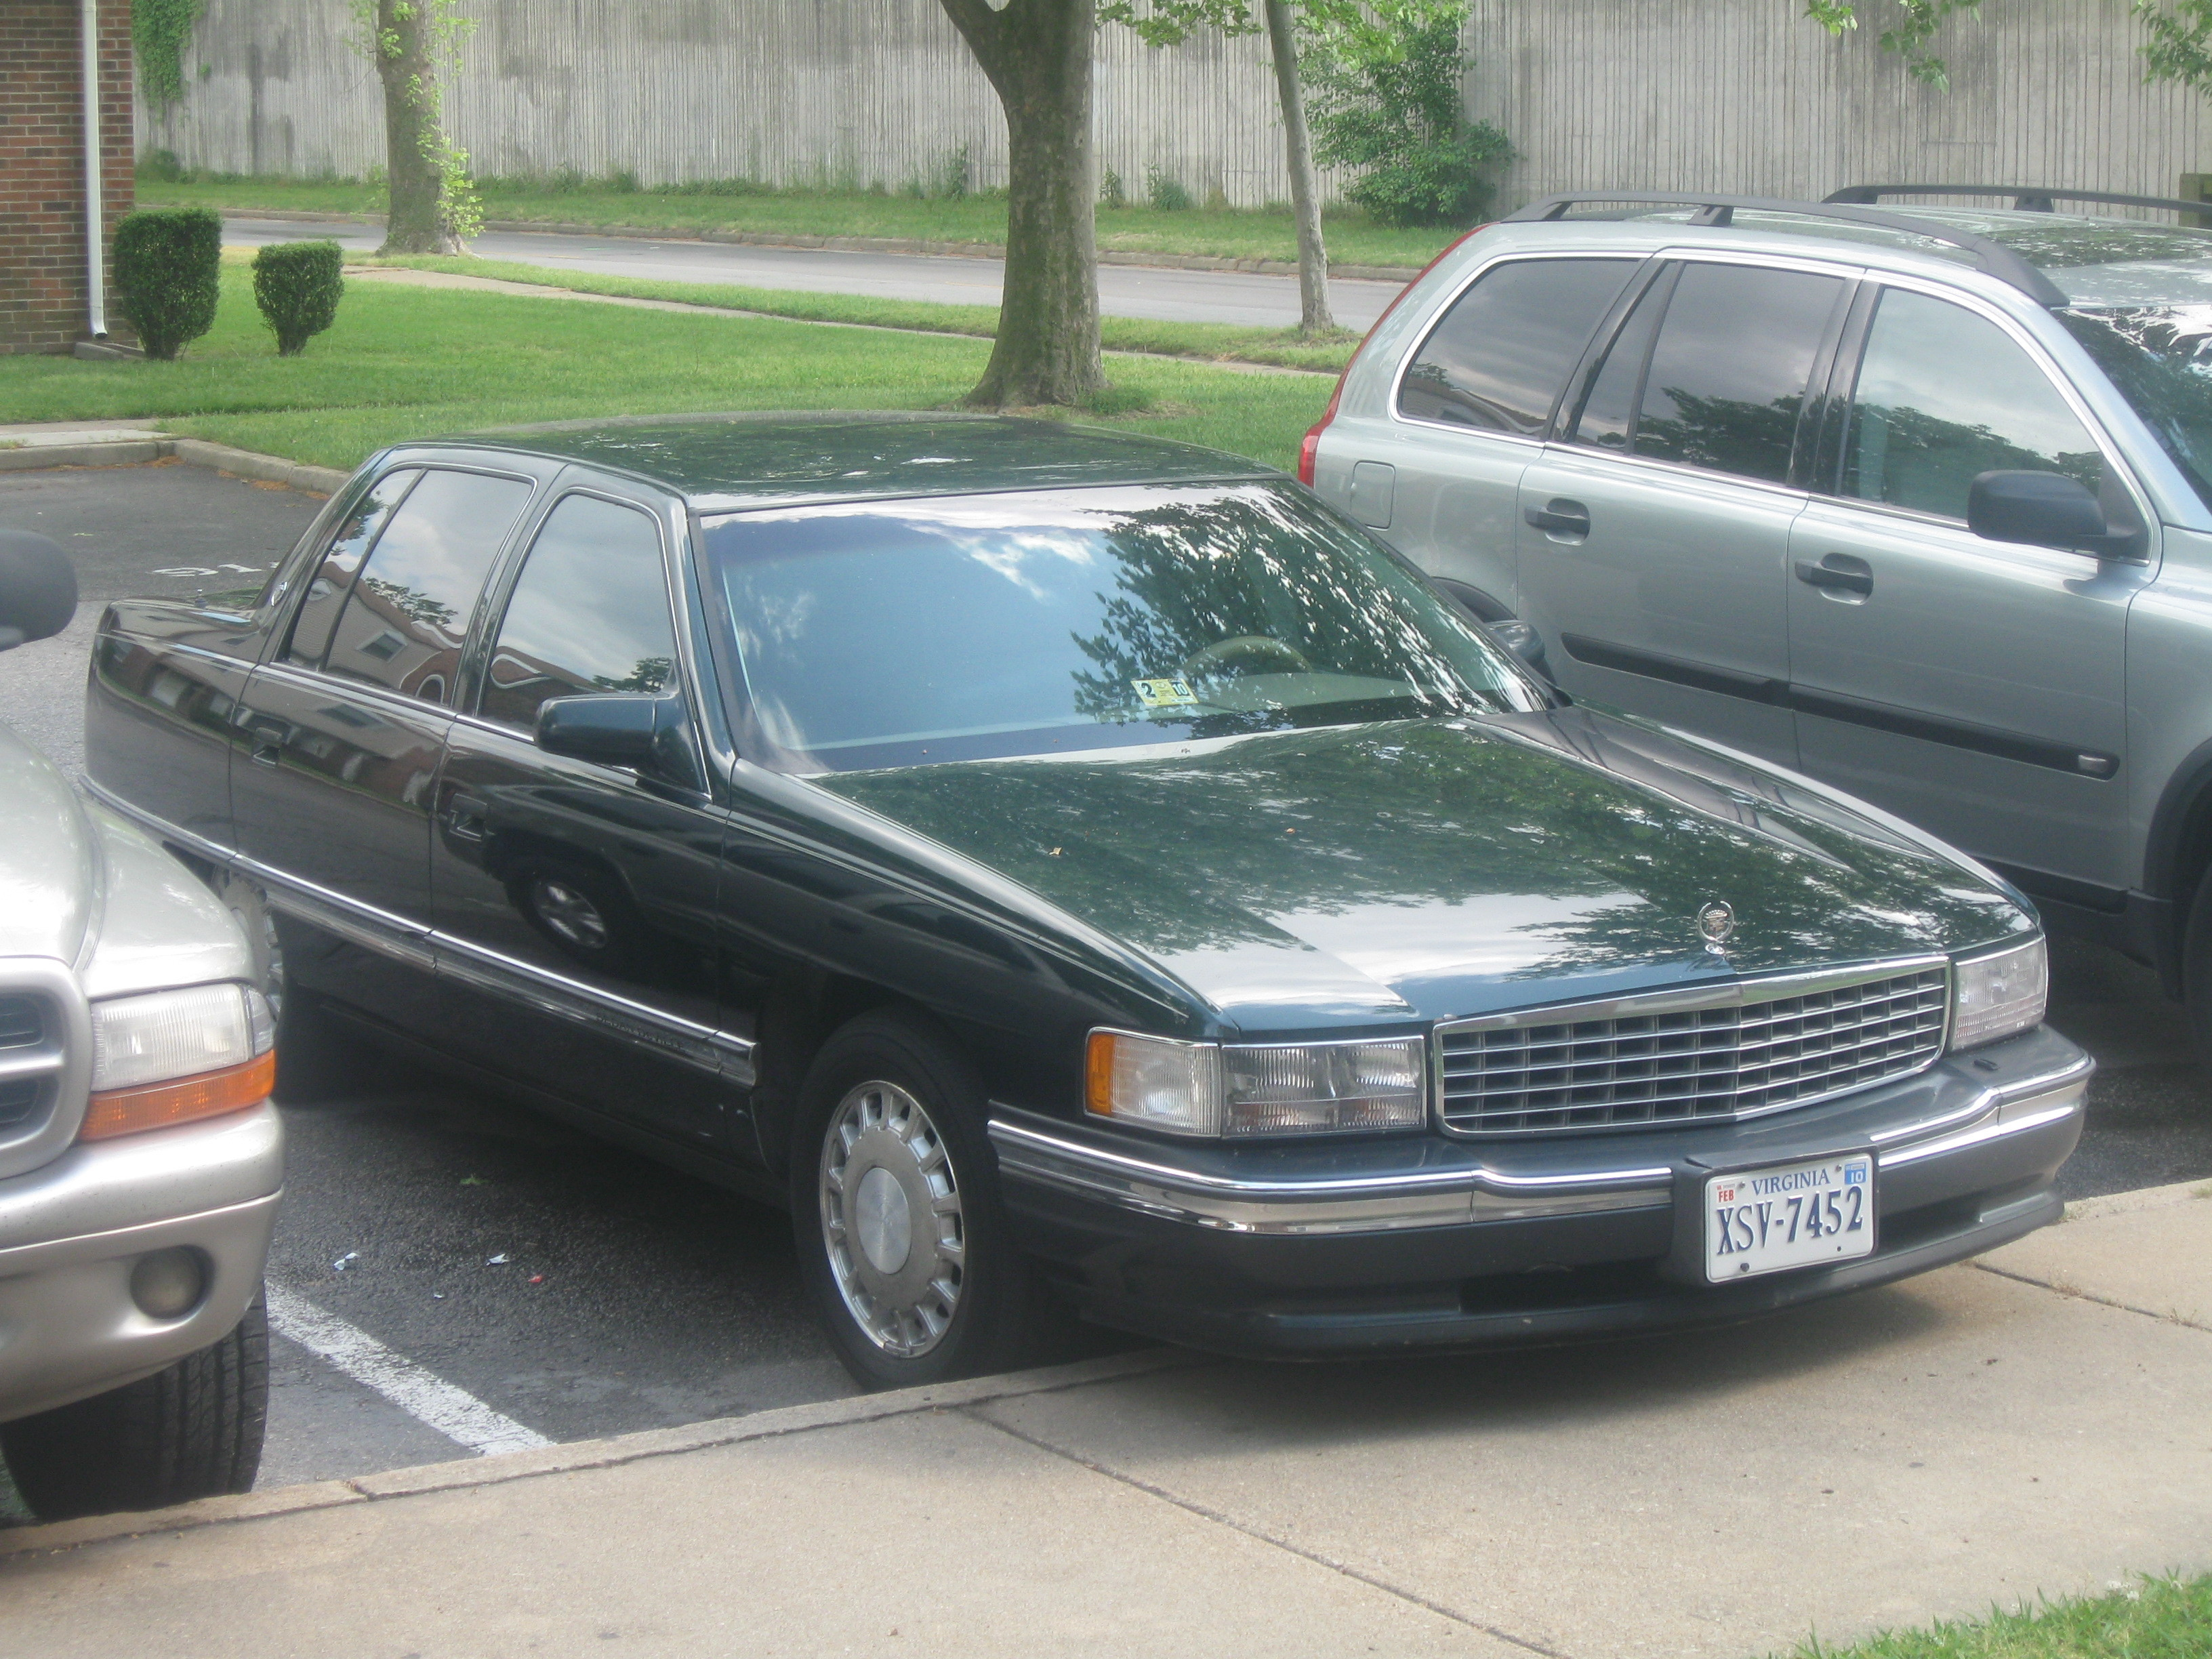 jboogie757 39 s 1996 cadillac deville in norfolk va. Cars Review. Best American Auto & Cars Review